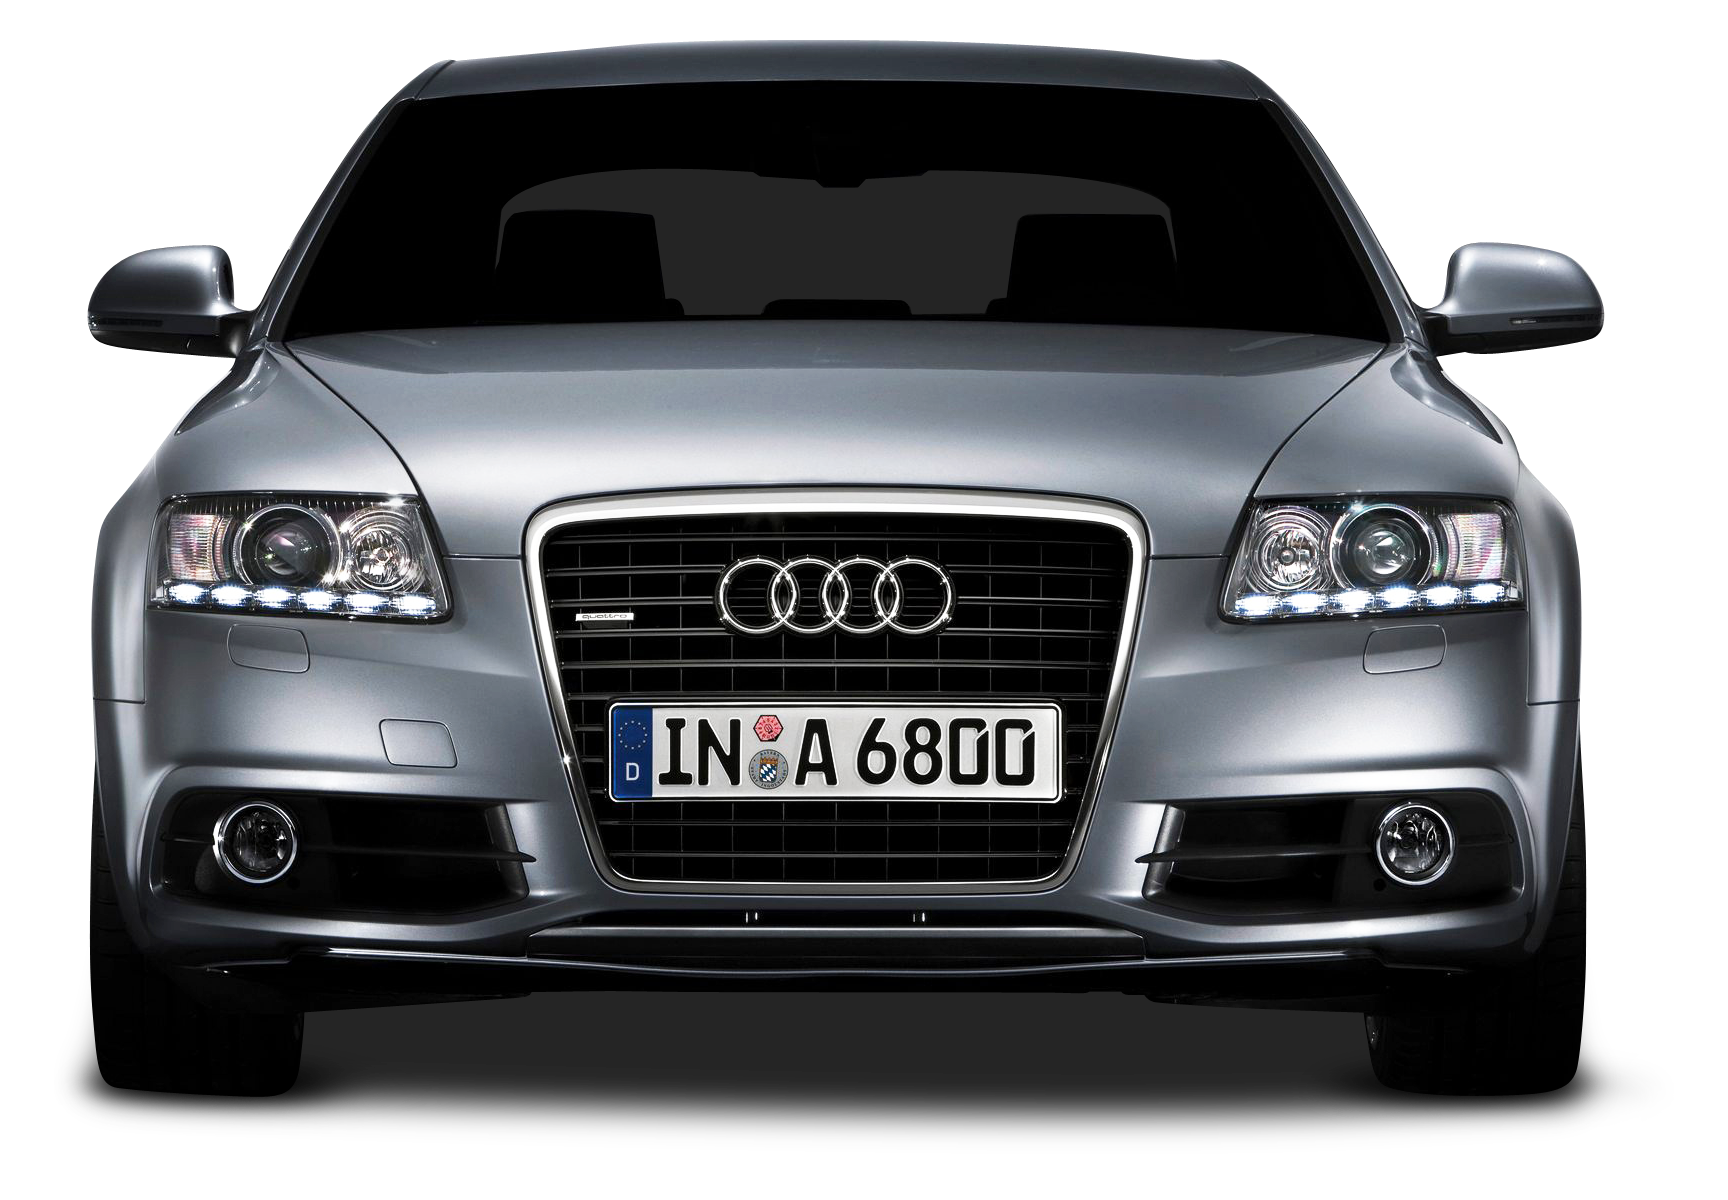 Front Of Car Png - Front side Audi Car PNG Image #45304 - Free Icons and PNG Backgrounds